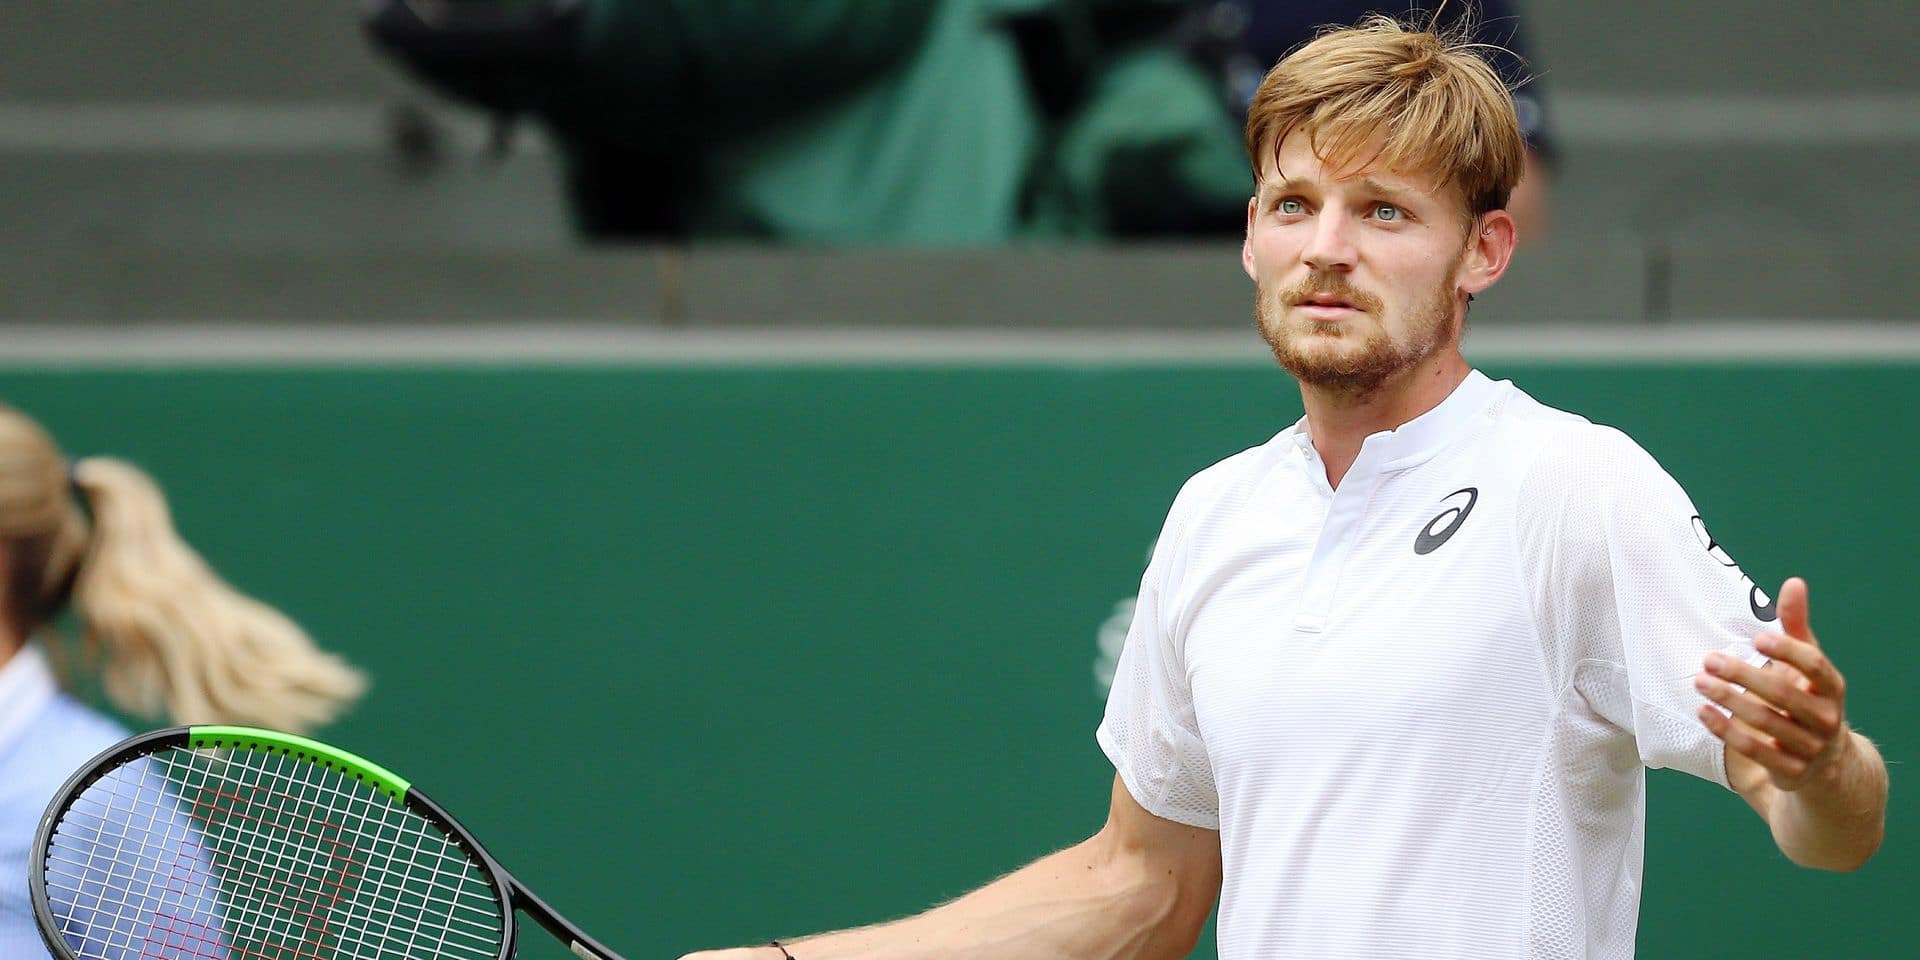 Belgian David Goffin (ATP 23) looks dejected during during a tennis match against Serbian Novak Djokovic (ATP 1) in the men's singles quarter-finals at the 2019 Wimbledon grand slam tennis tournament at the All England Tennis Club, in south-west London, Britain, Wednesday 10 July 2019. BELGA PHOTO BENOIT DOPPAGNE